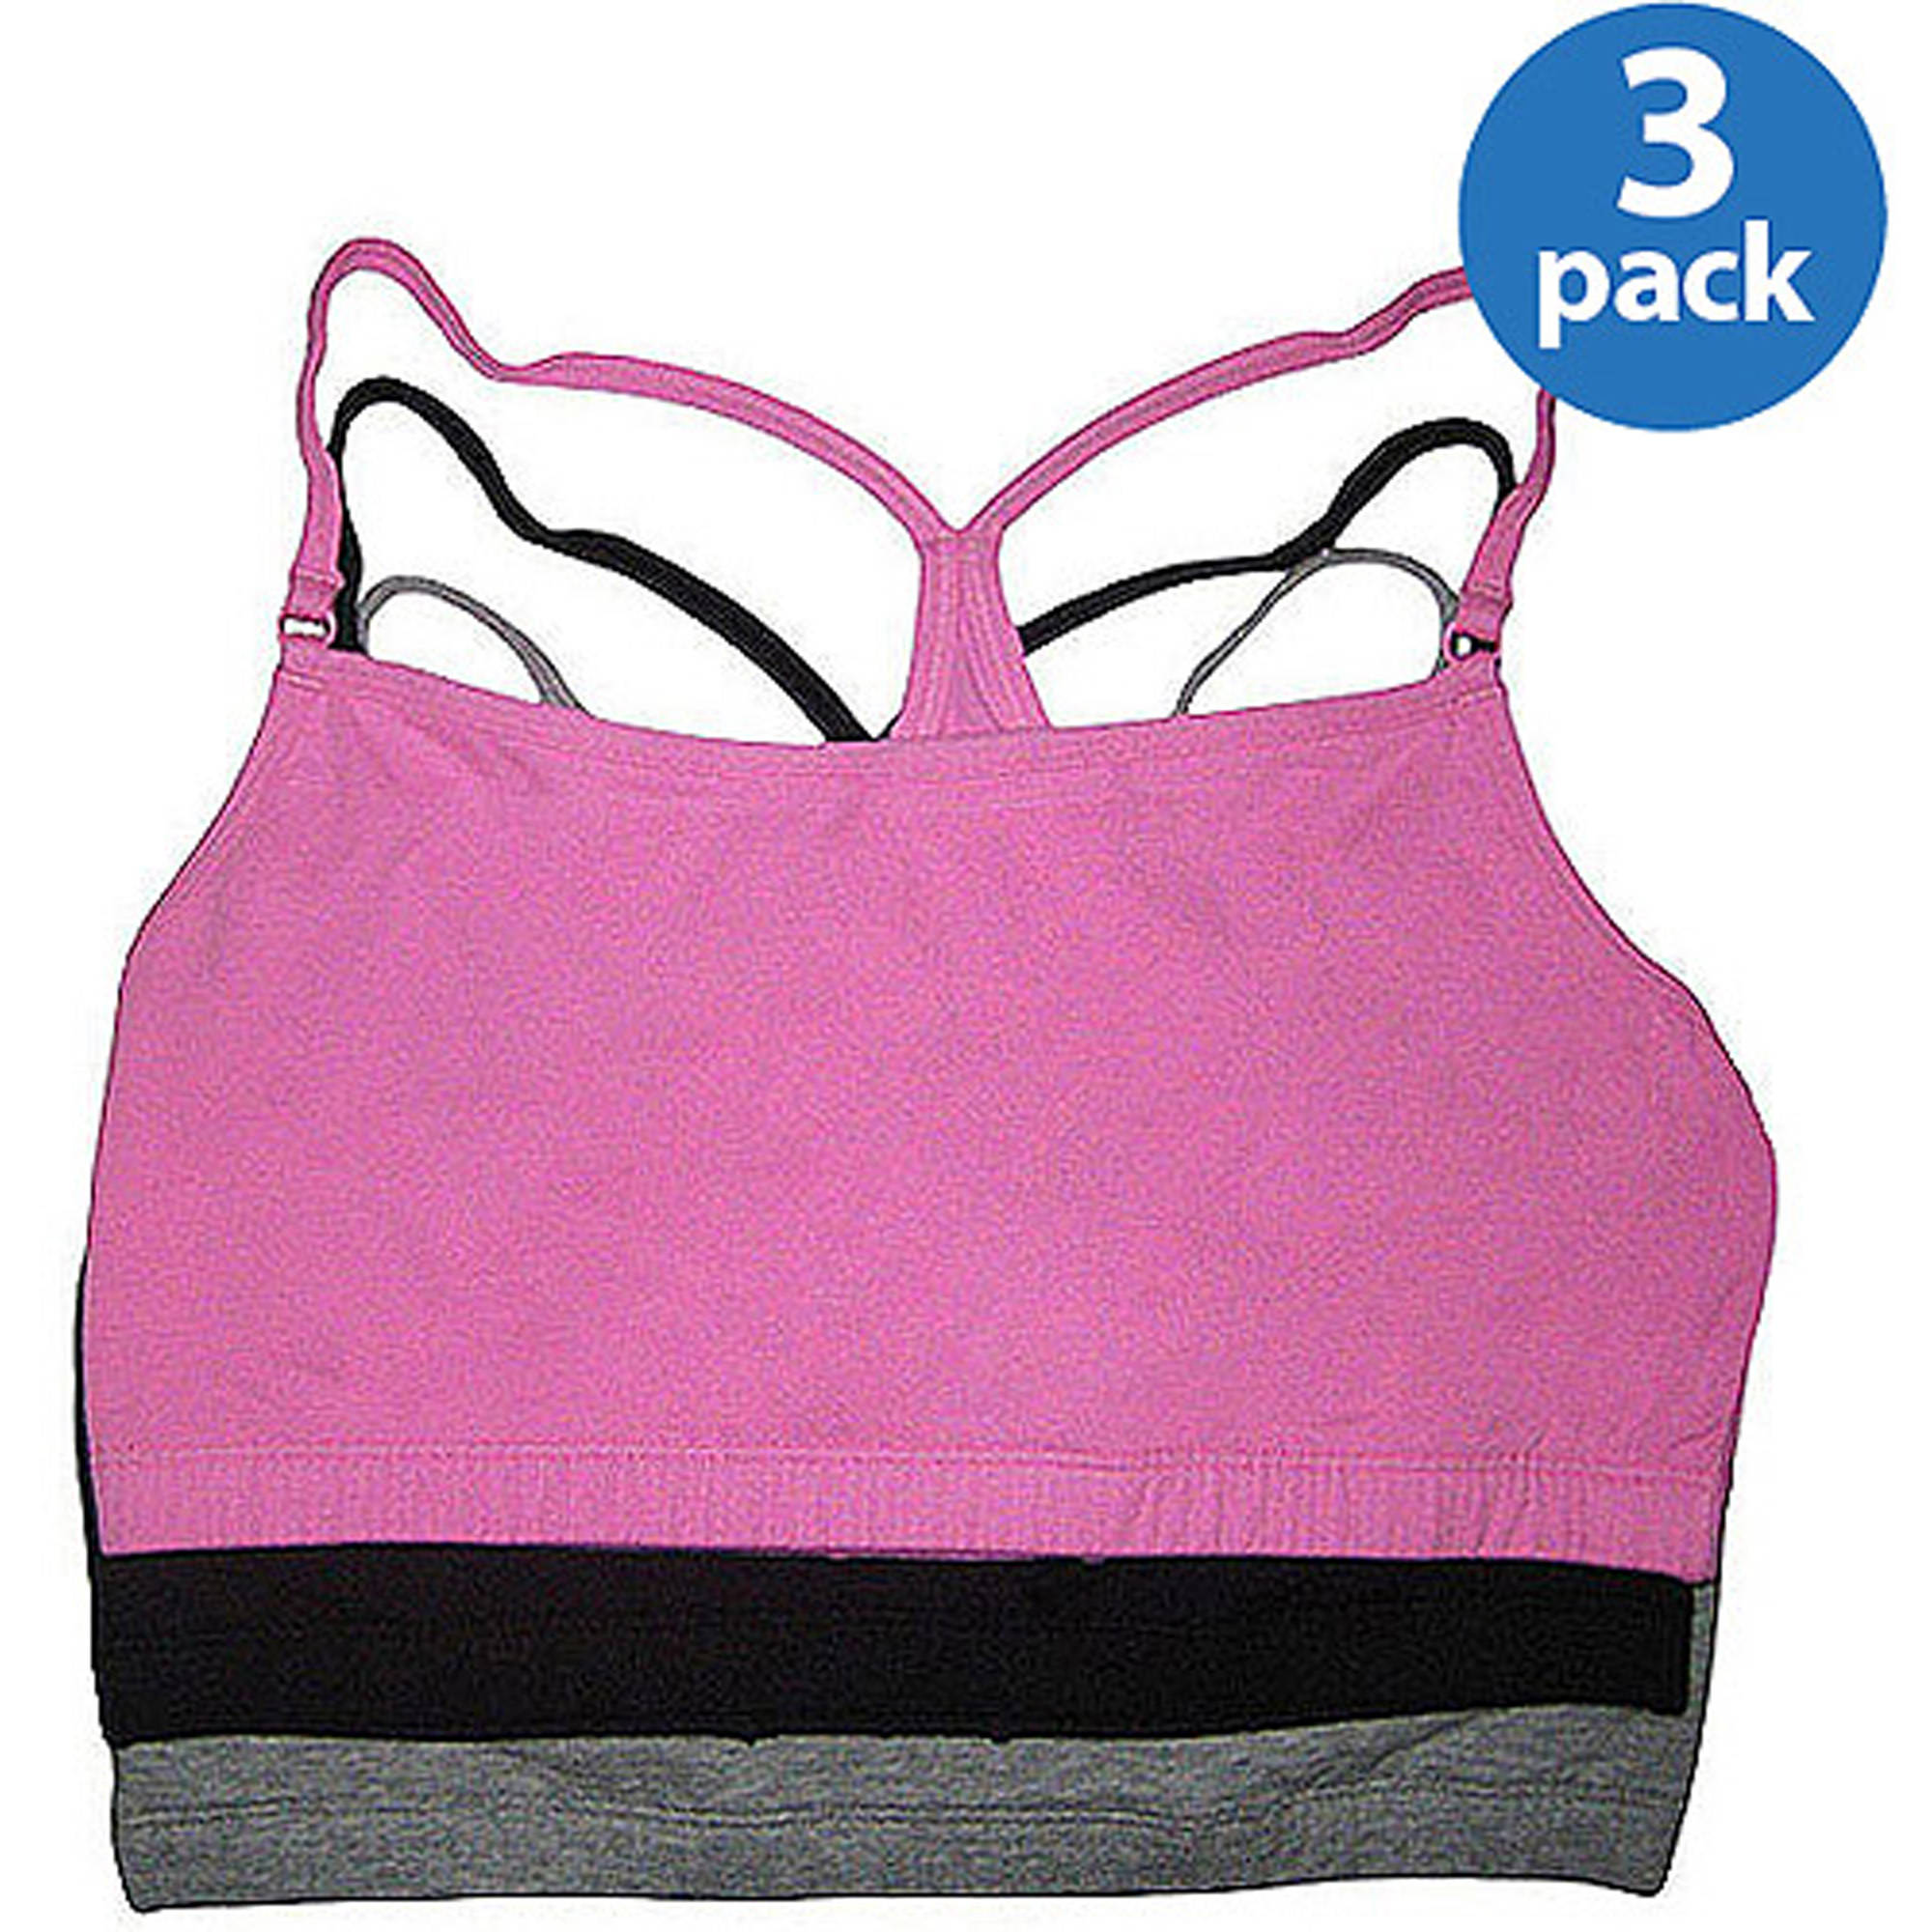 Fruit of the Loom - Strappy Racerback Sport Bras, 3-Pack, Style 90007